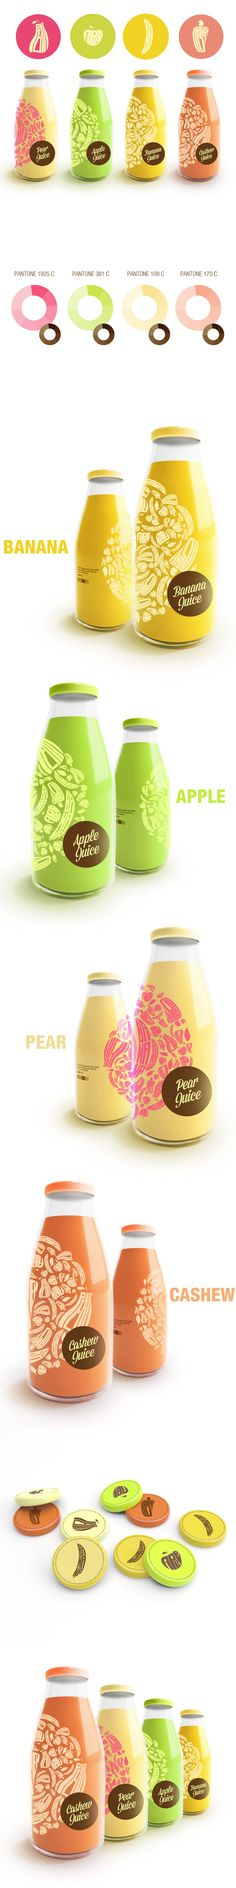 Like the colour palette of this packaging project. Packaging Project by Renan Vizzotto Juice Branding, Juice Packaging, Beverage Packaging, Bottle Packaging, Pretty Packaging, Brand Packaging, Design Packaging, Packaging Ideas, Simple Packaging